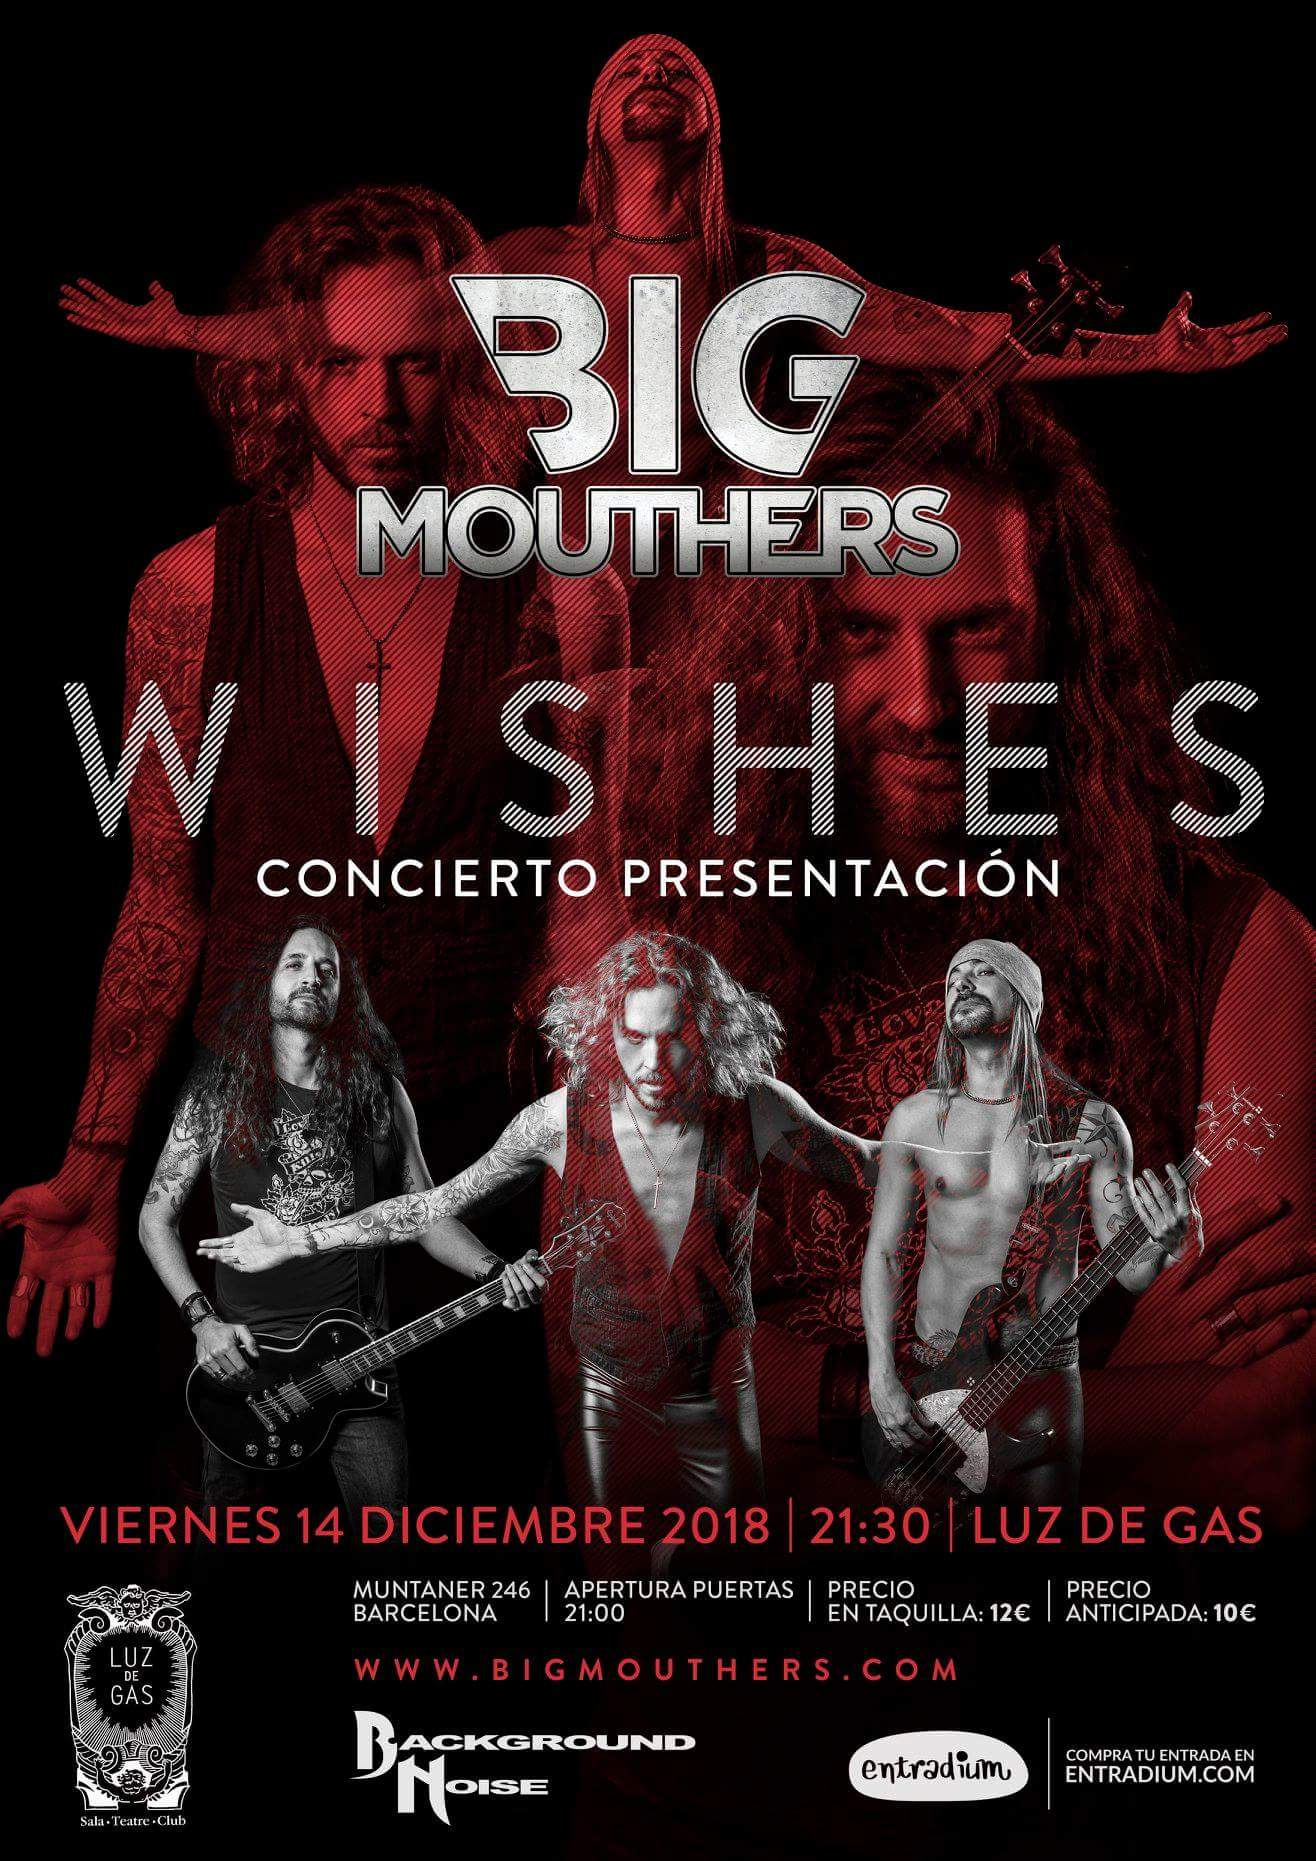 BIG MOUTHERS presentación WISHES